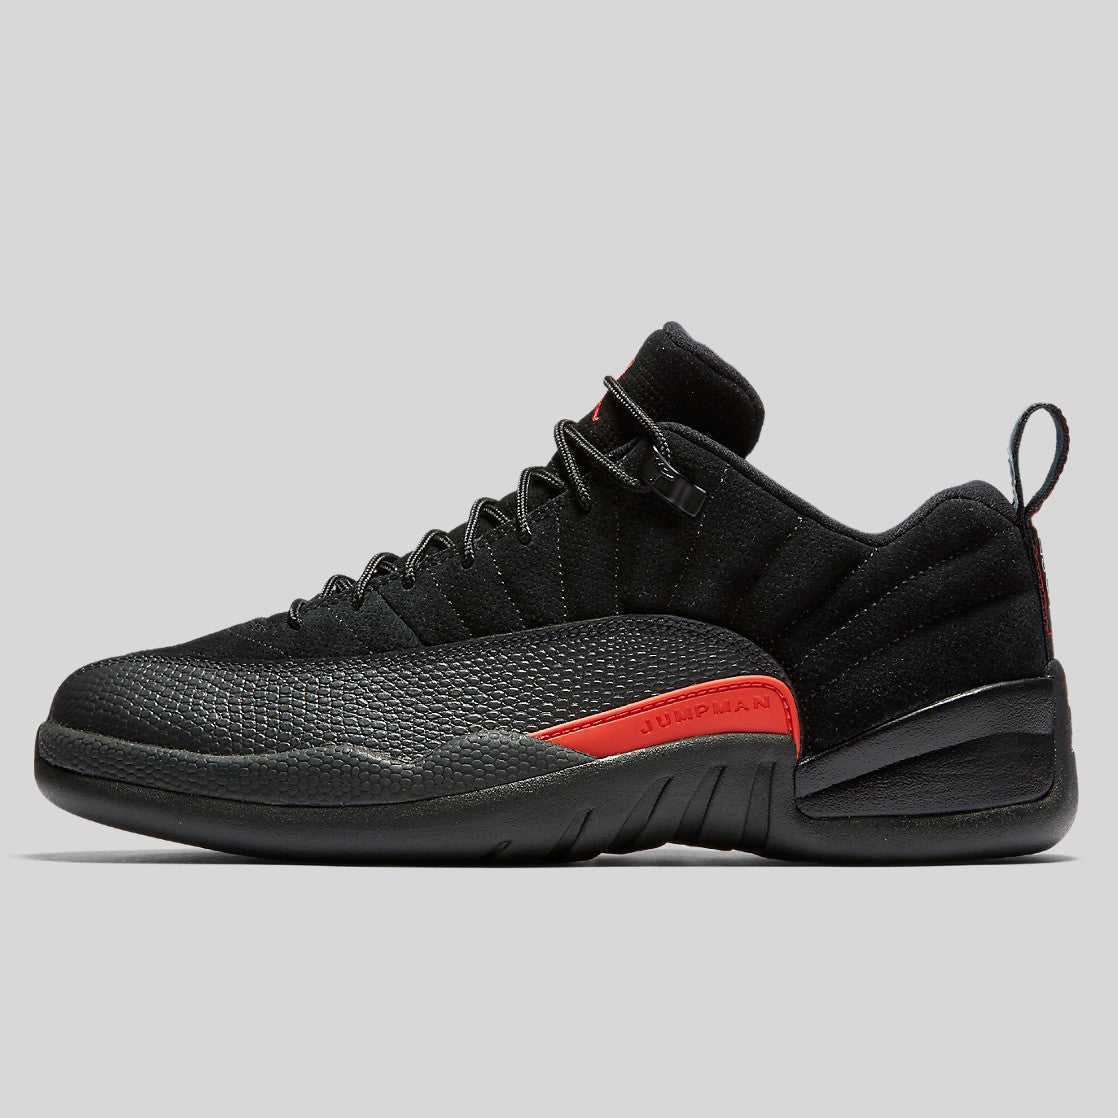 sale retailer f7531 ec710 Nike Air Jordan 12 Retro Low Black Max Orange Anthracite (308317-003) ...